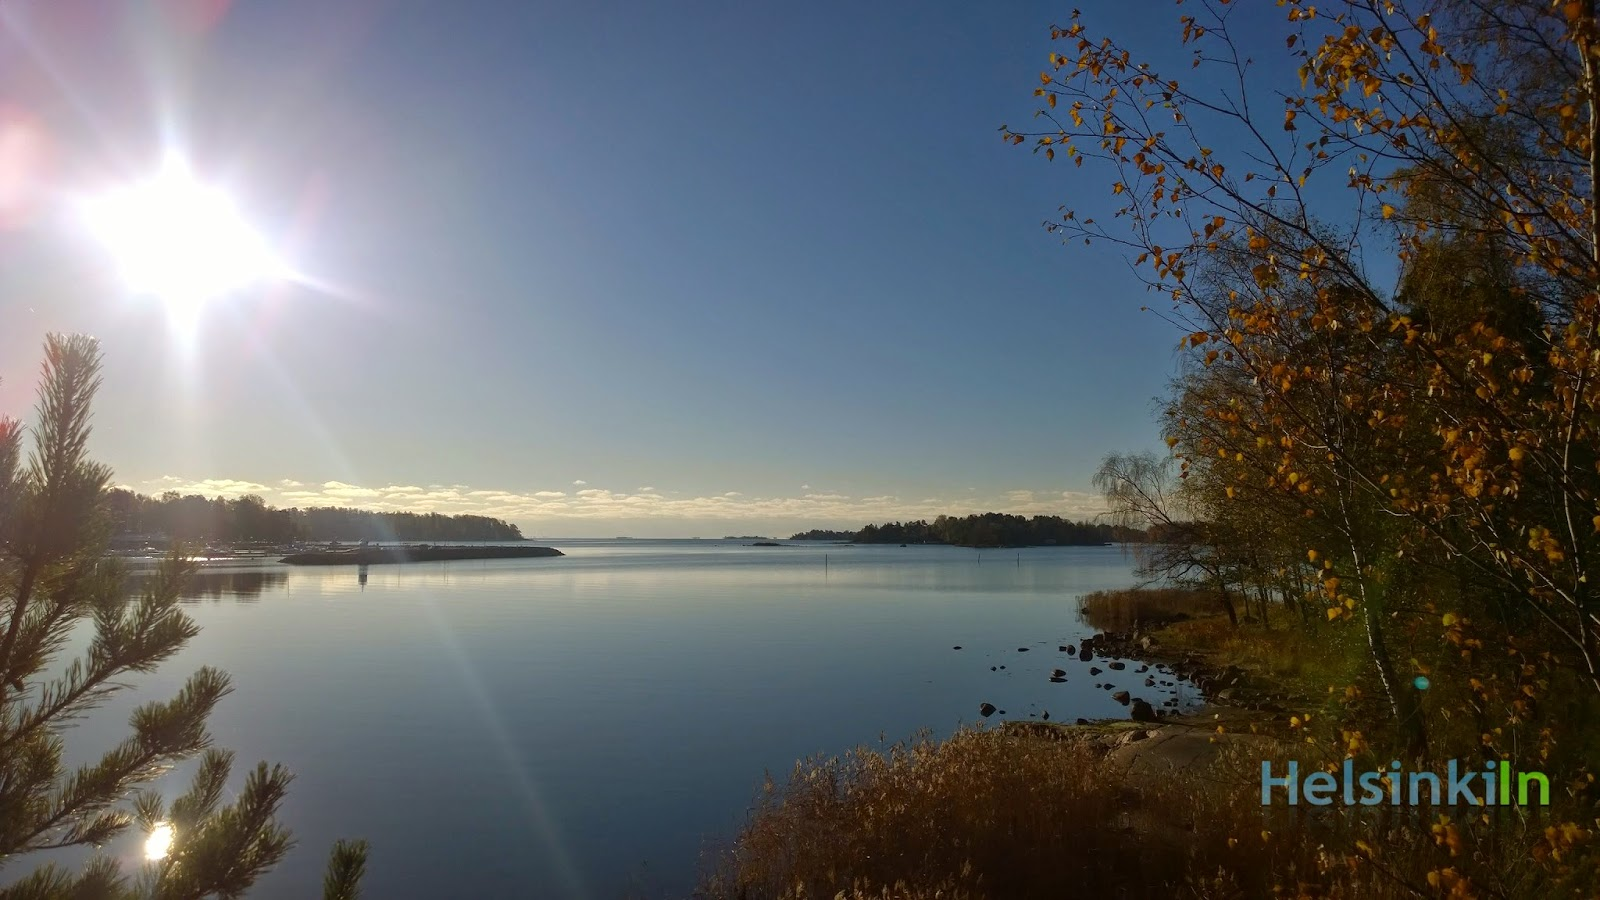 Fall morning in Hanasaari